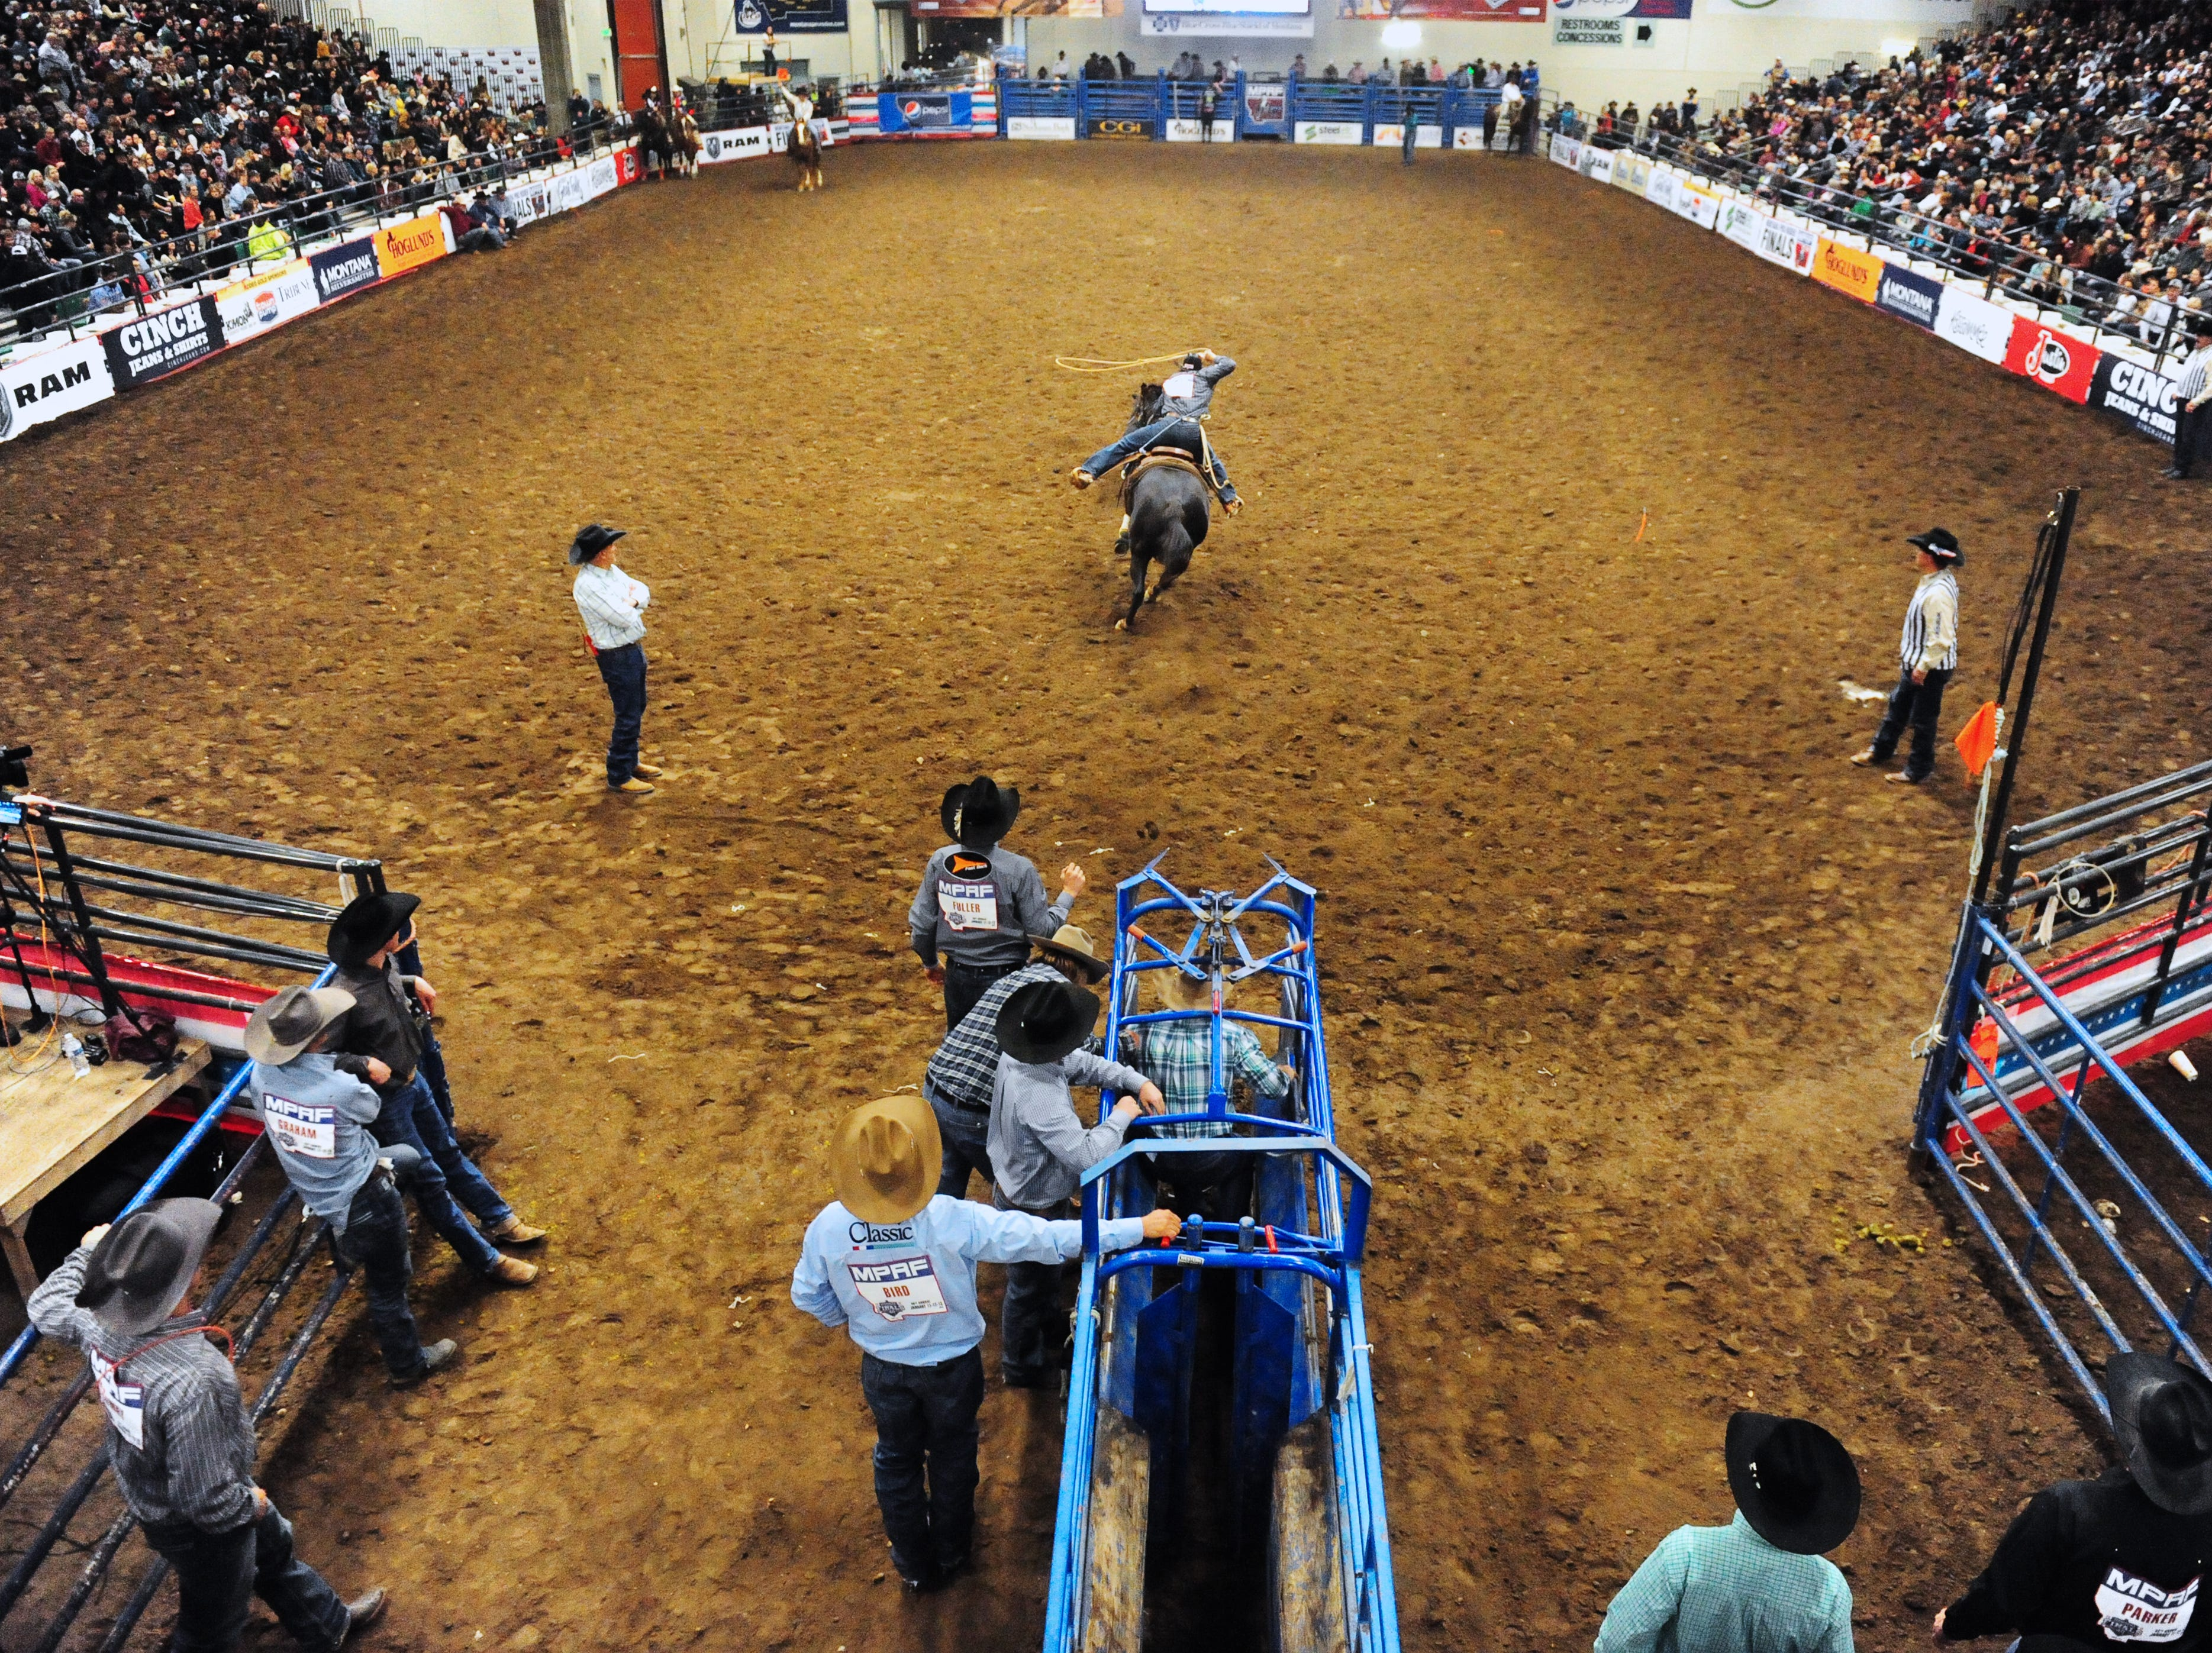 Montana Pro Rodeo Circuit Finals in the Pacific Steel and Recycling Four Seasons Arena, Friday, January 11, 2019.